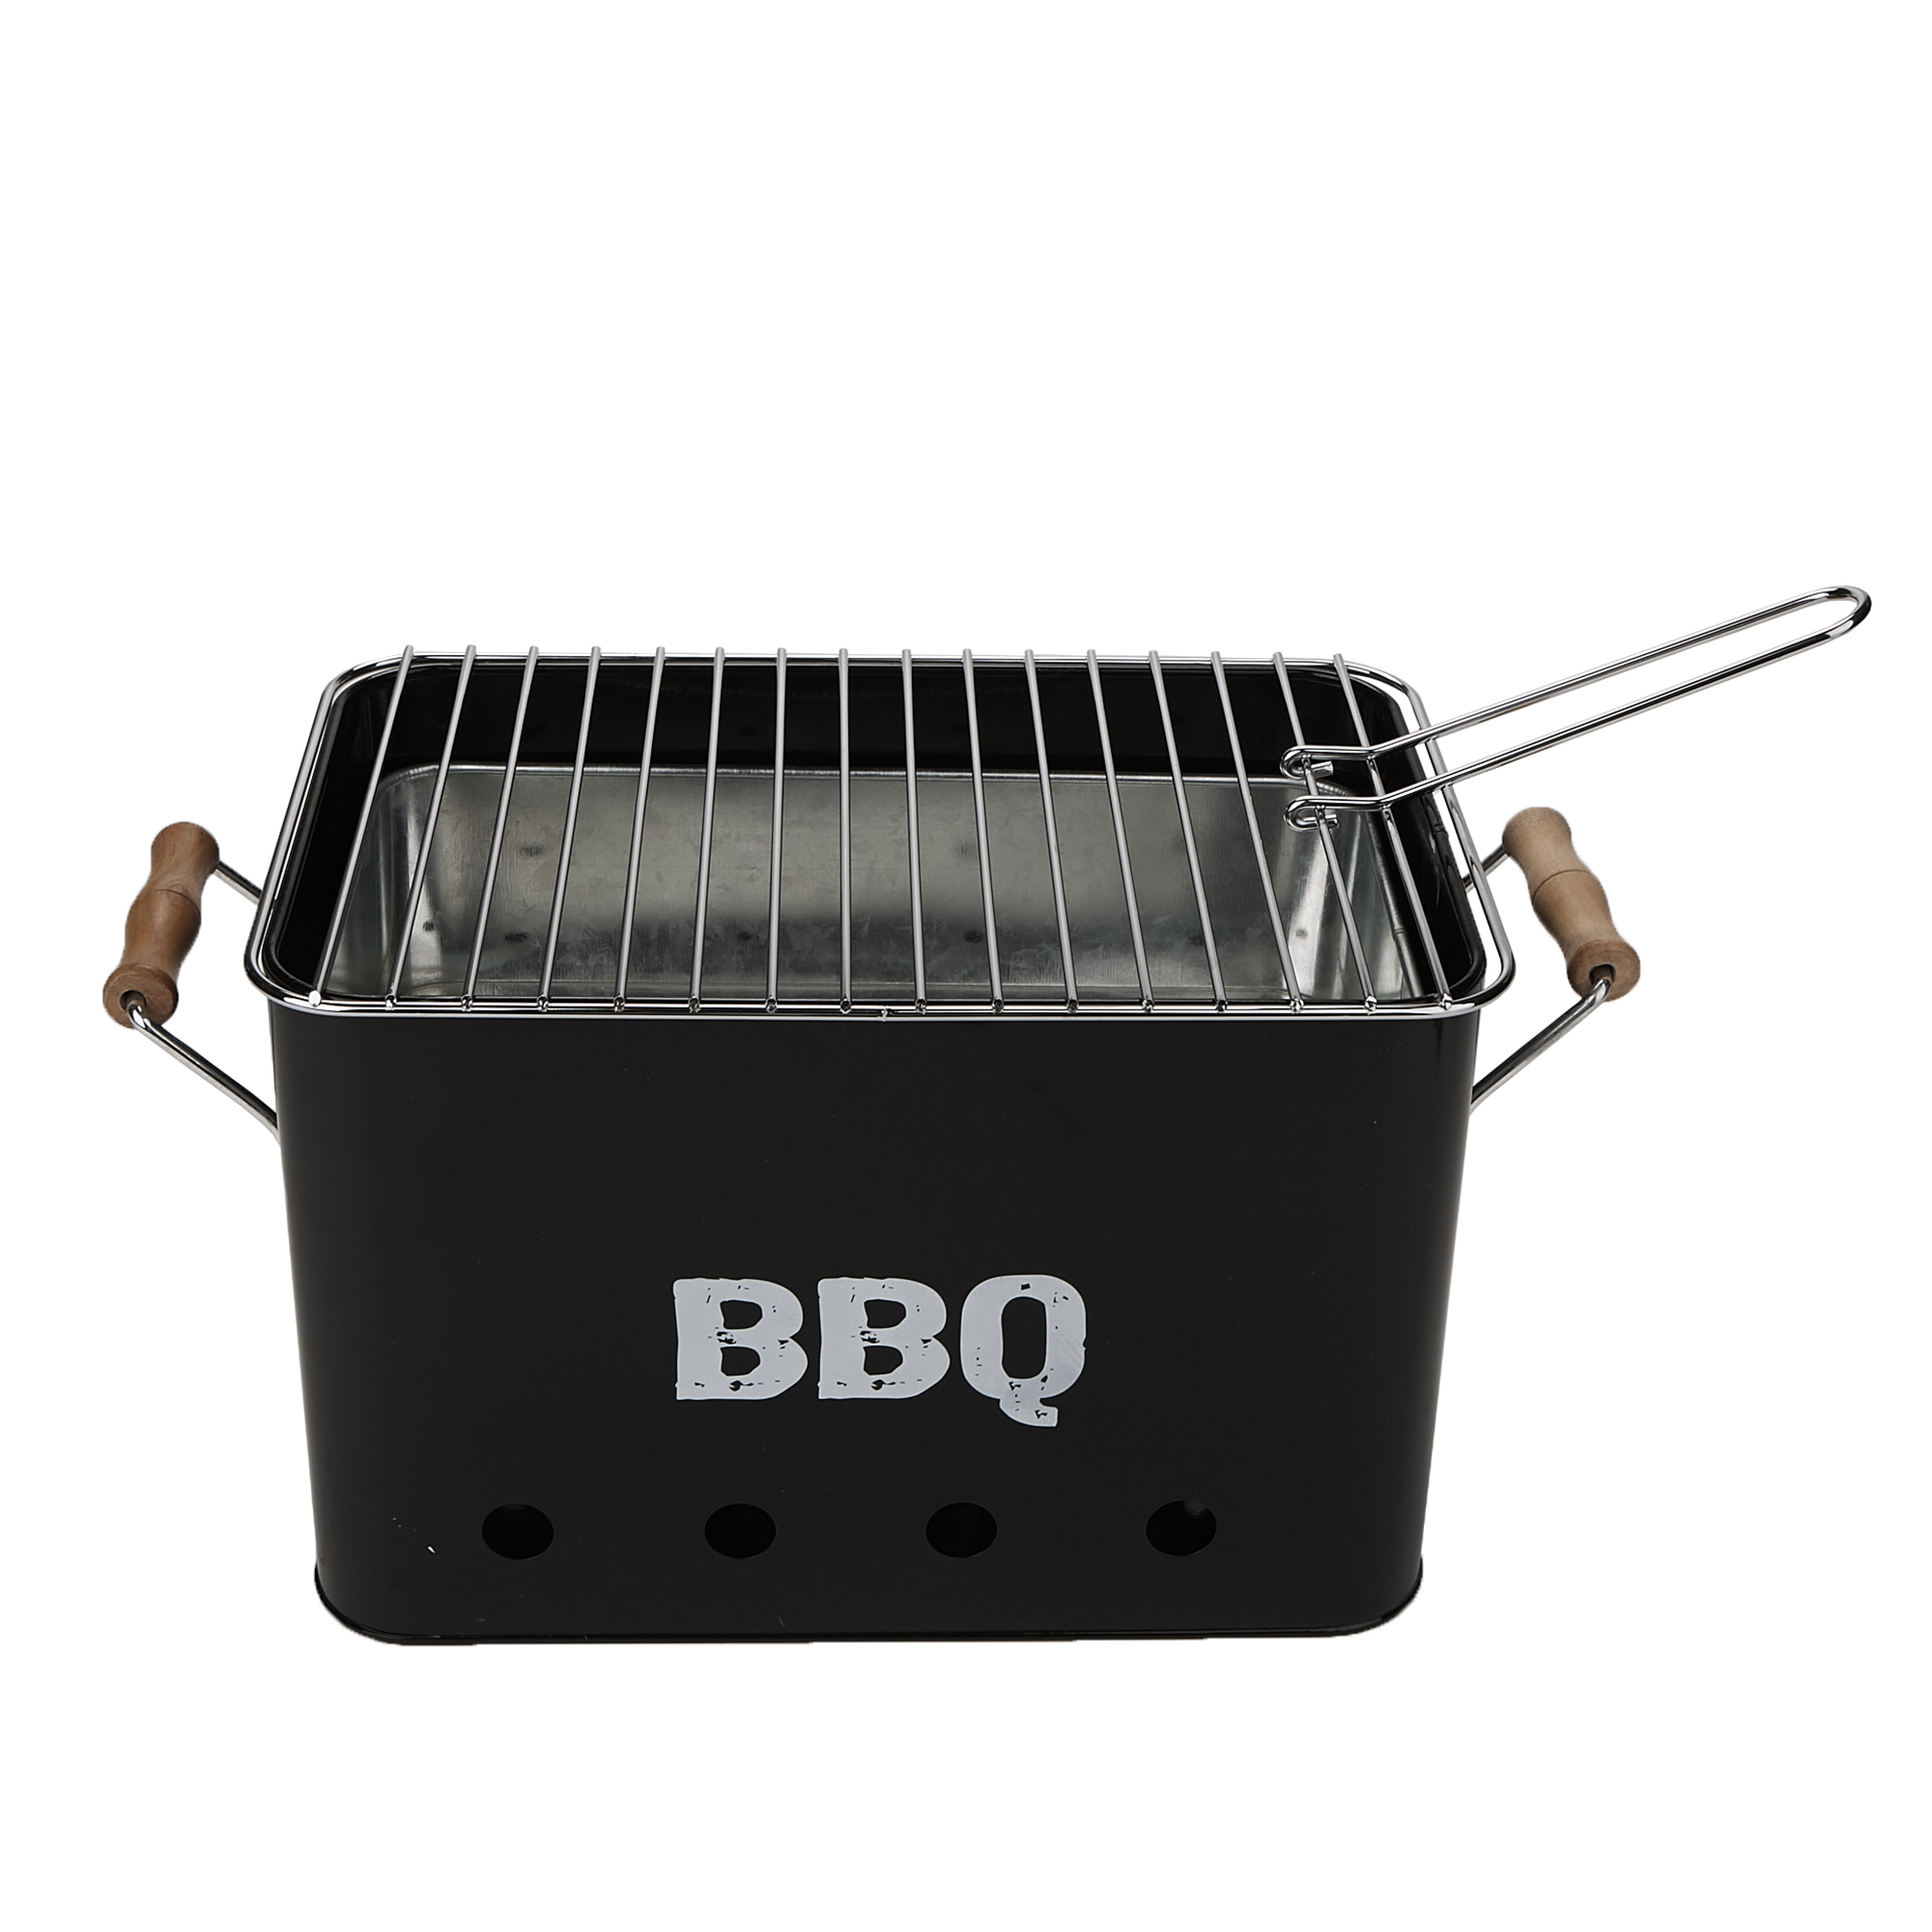 Genial Mind Reader Small Metal Portable BBQ Grill, Charcoal Lightweight Portable  Grill, Outdoor Grilling, Picnics, Beachs, Camping, Black